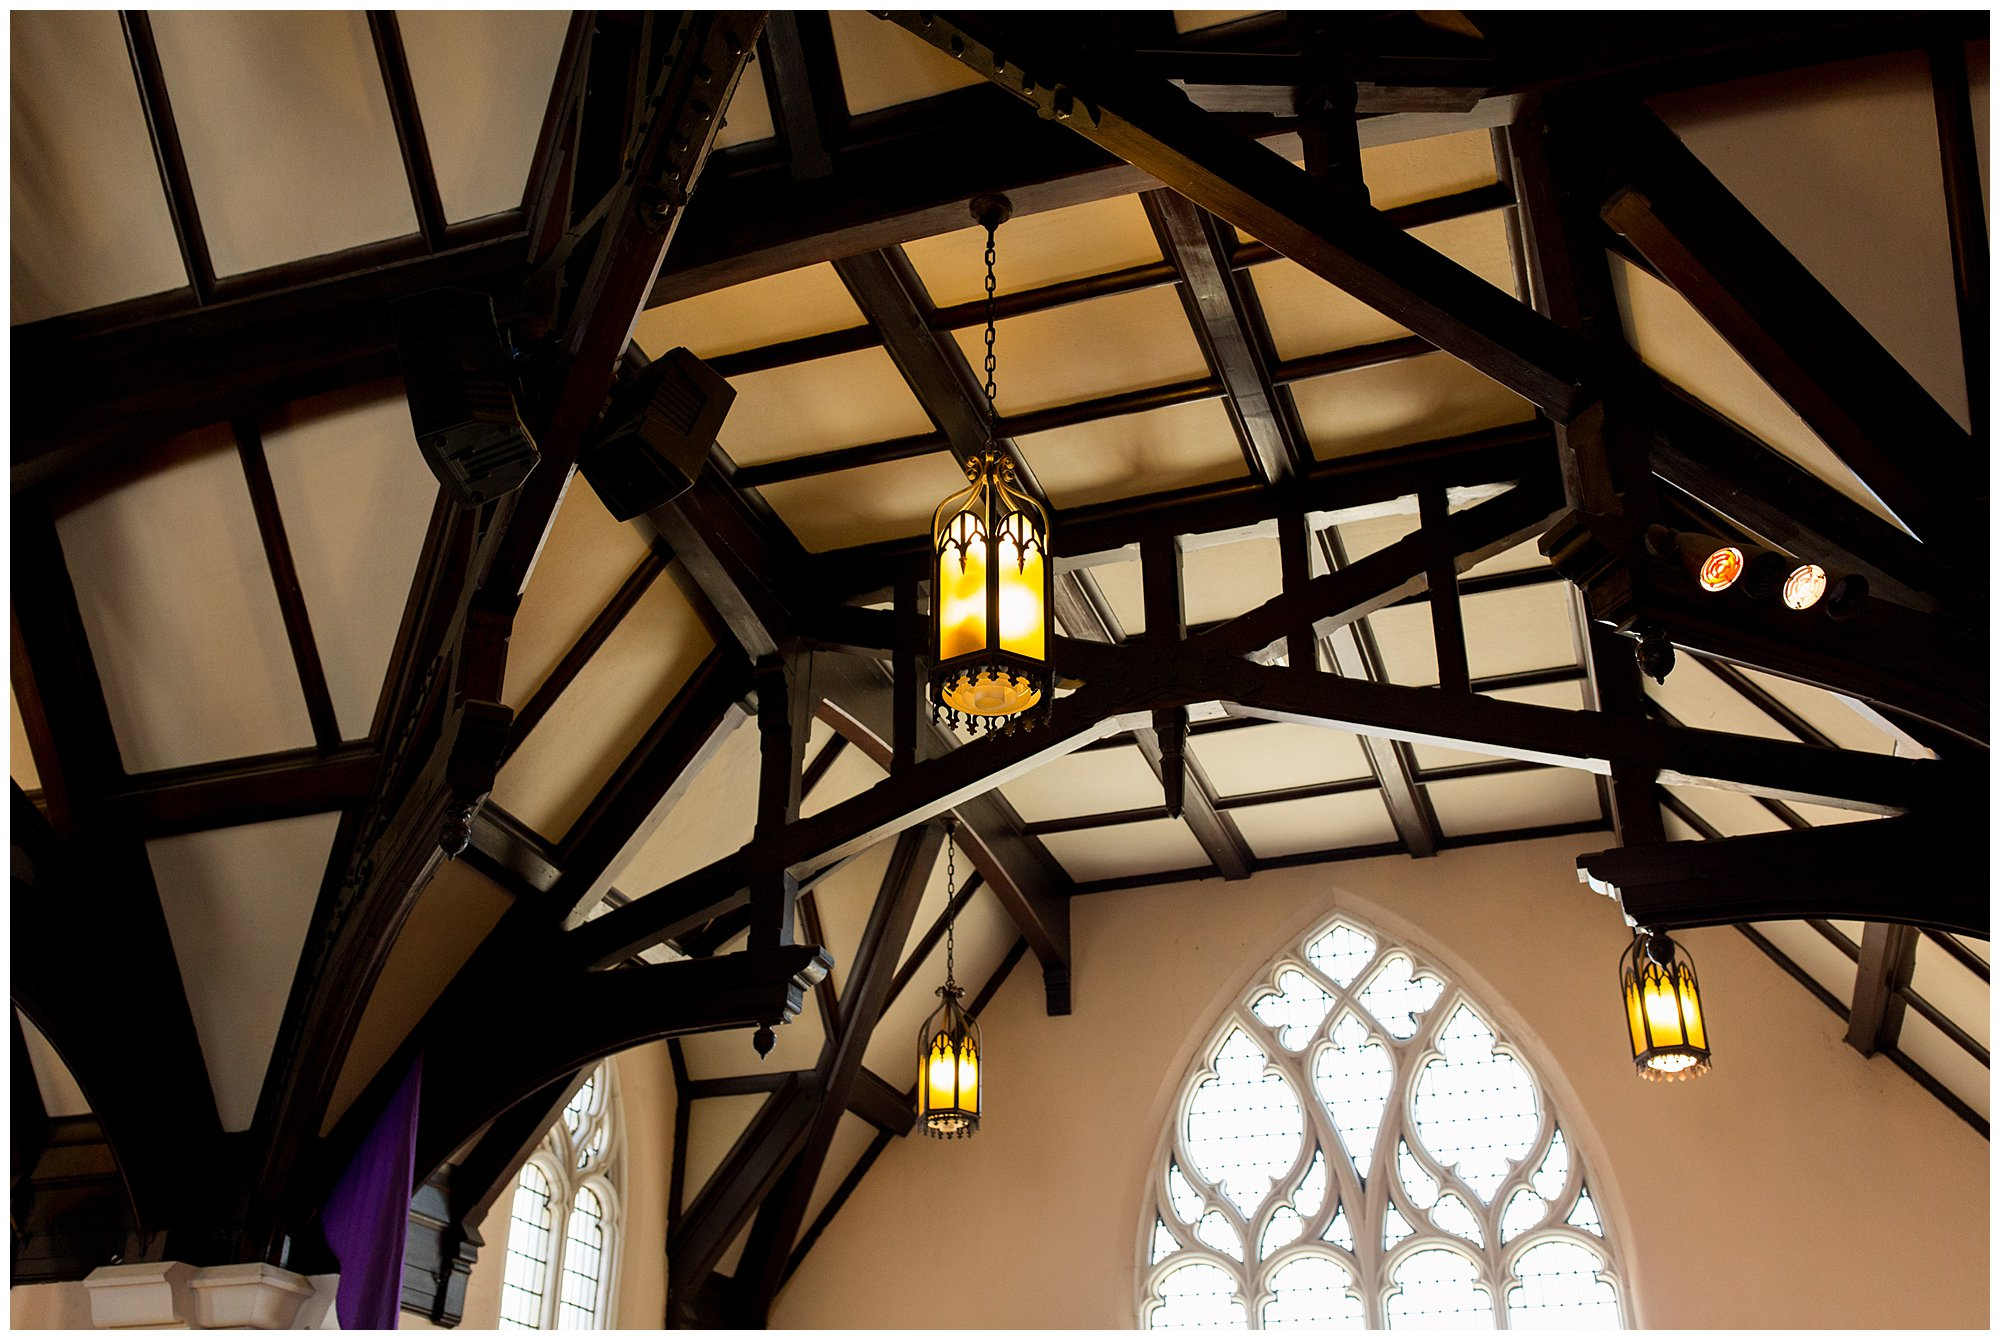 wooden beams in ceiling of sanctuary at Irvington United Methodist Church